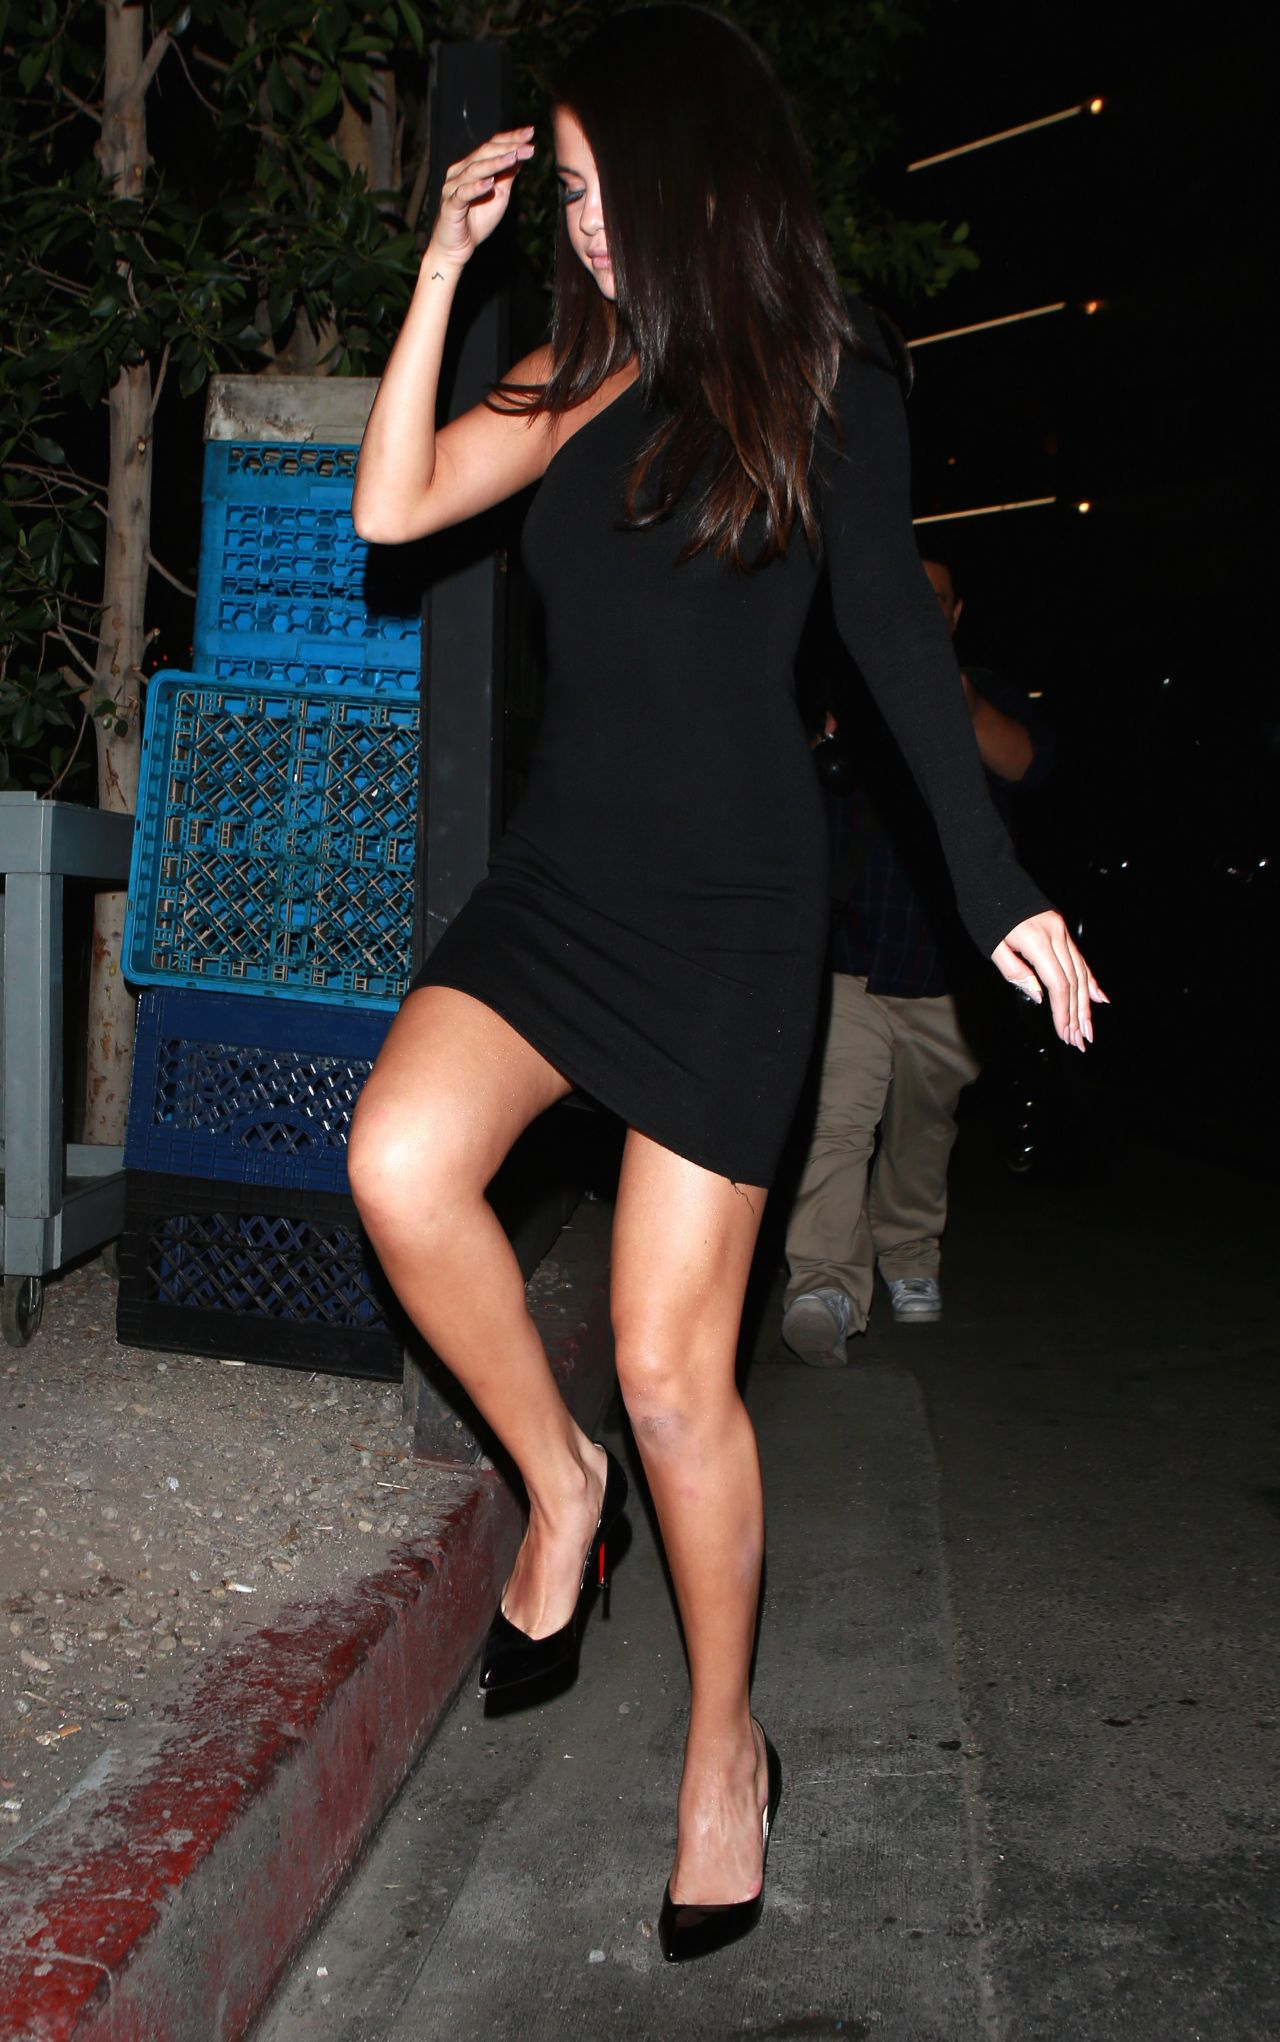 selena-gomez-at-the-nice-guy-in-beverly-hills-september-2015_12